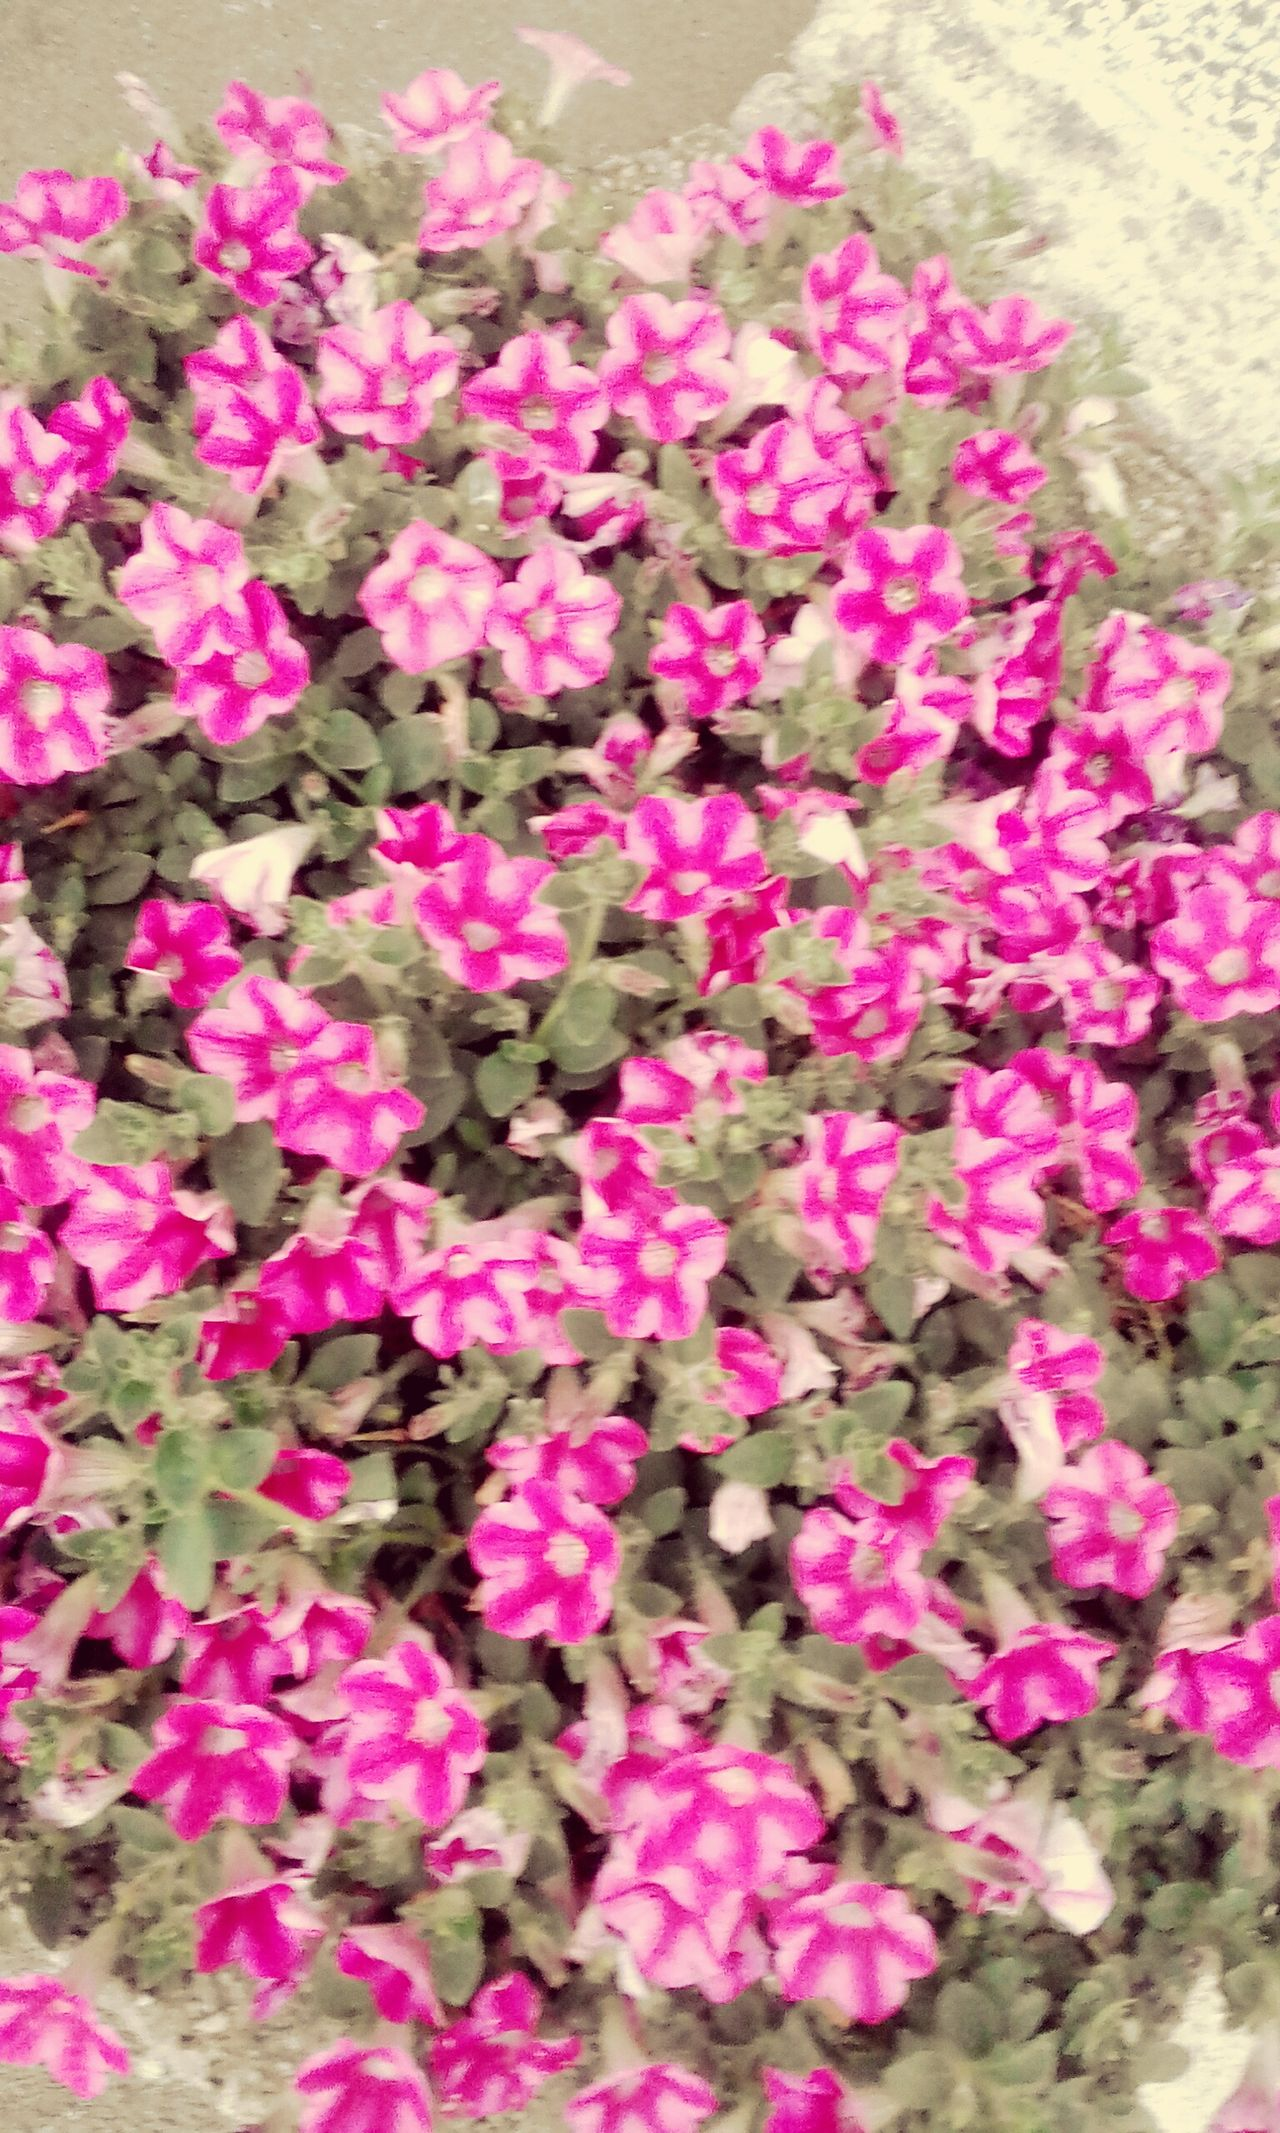 Flower Pink Color Petal Beauty In Nature Nature Fragility No People Plant Freshness Pink High Angle View Blooming Day Outdoors Growth Leaf Flower Head Bougainvillea Close-up Petunia